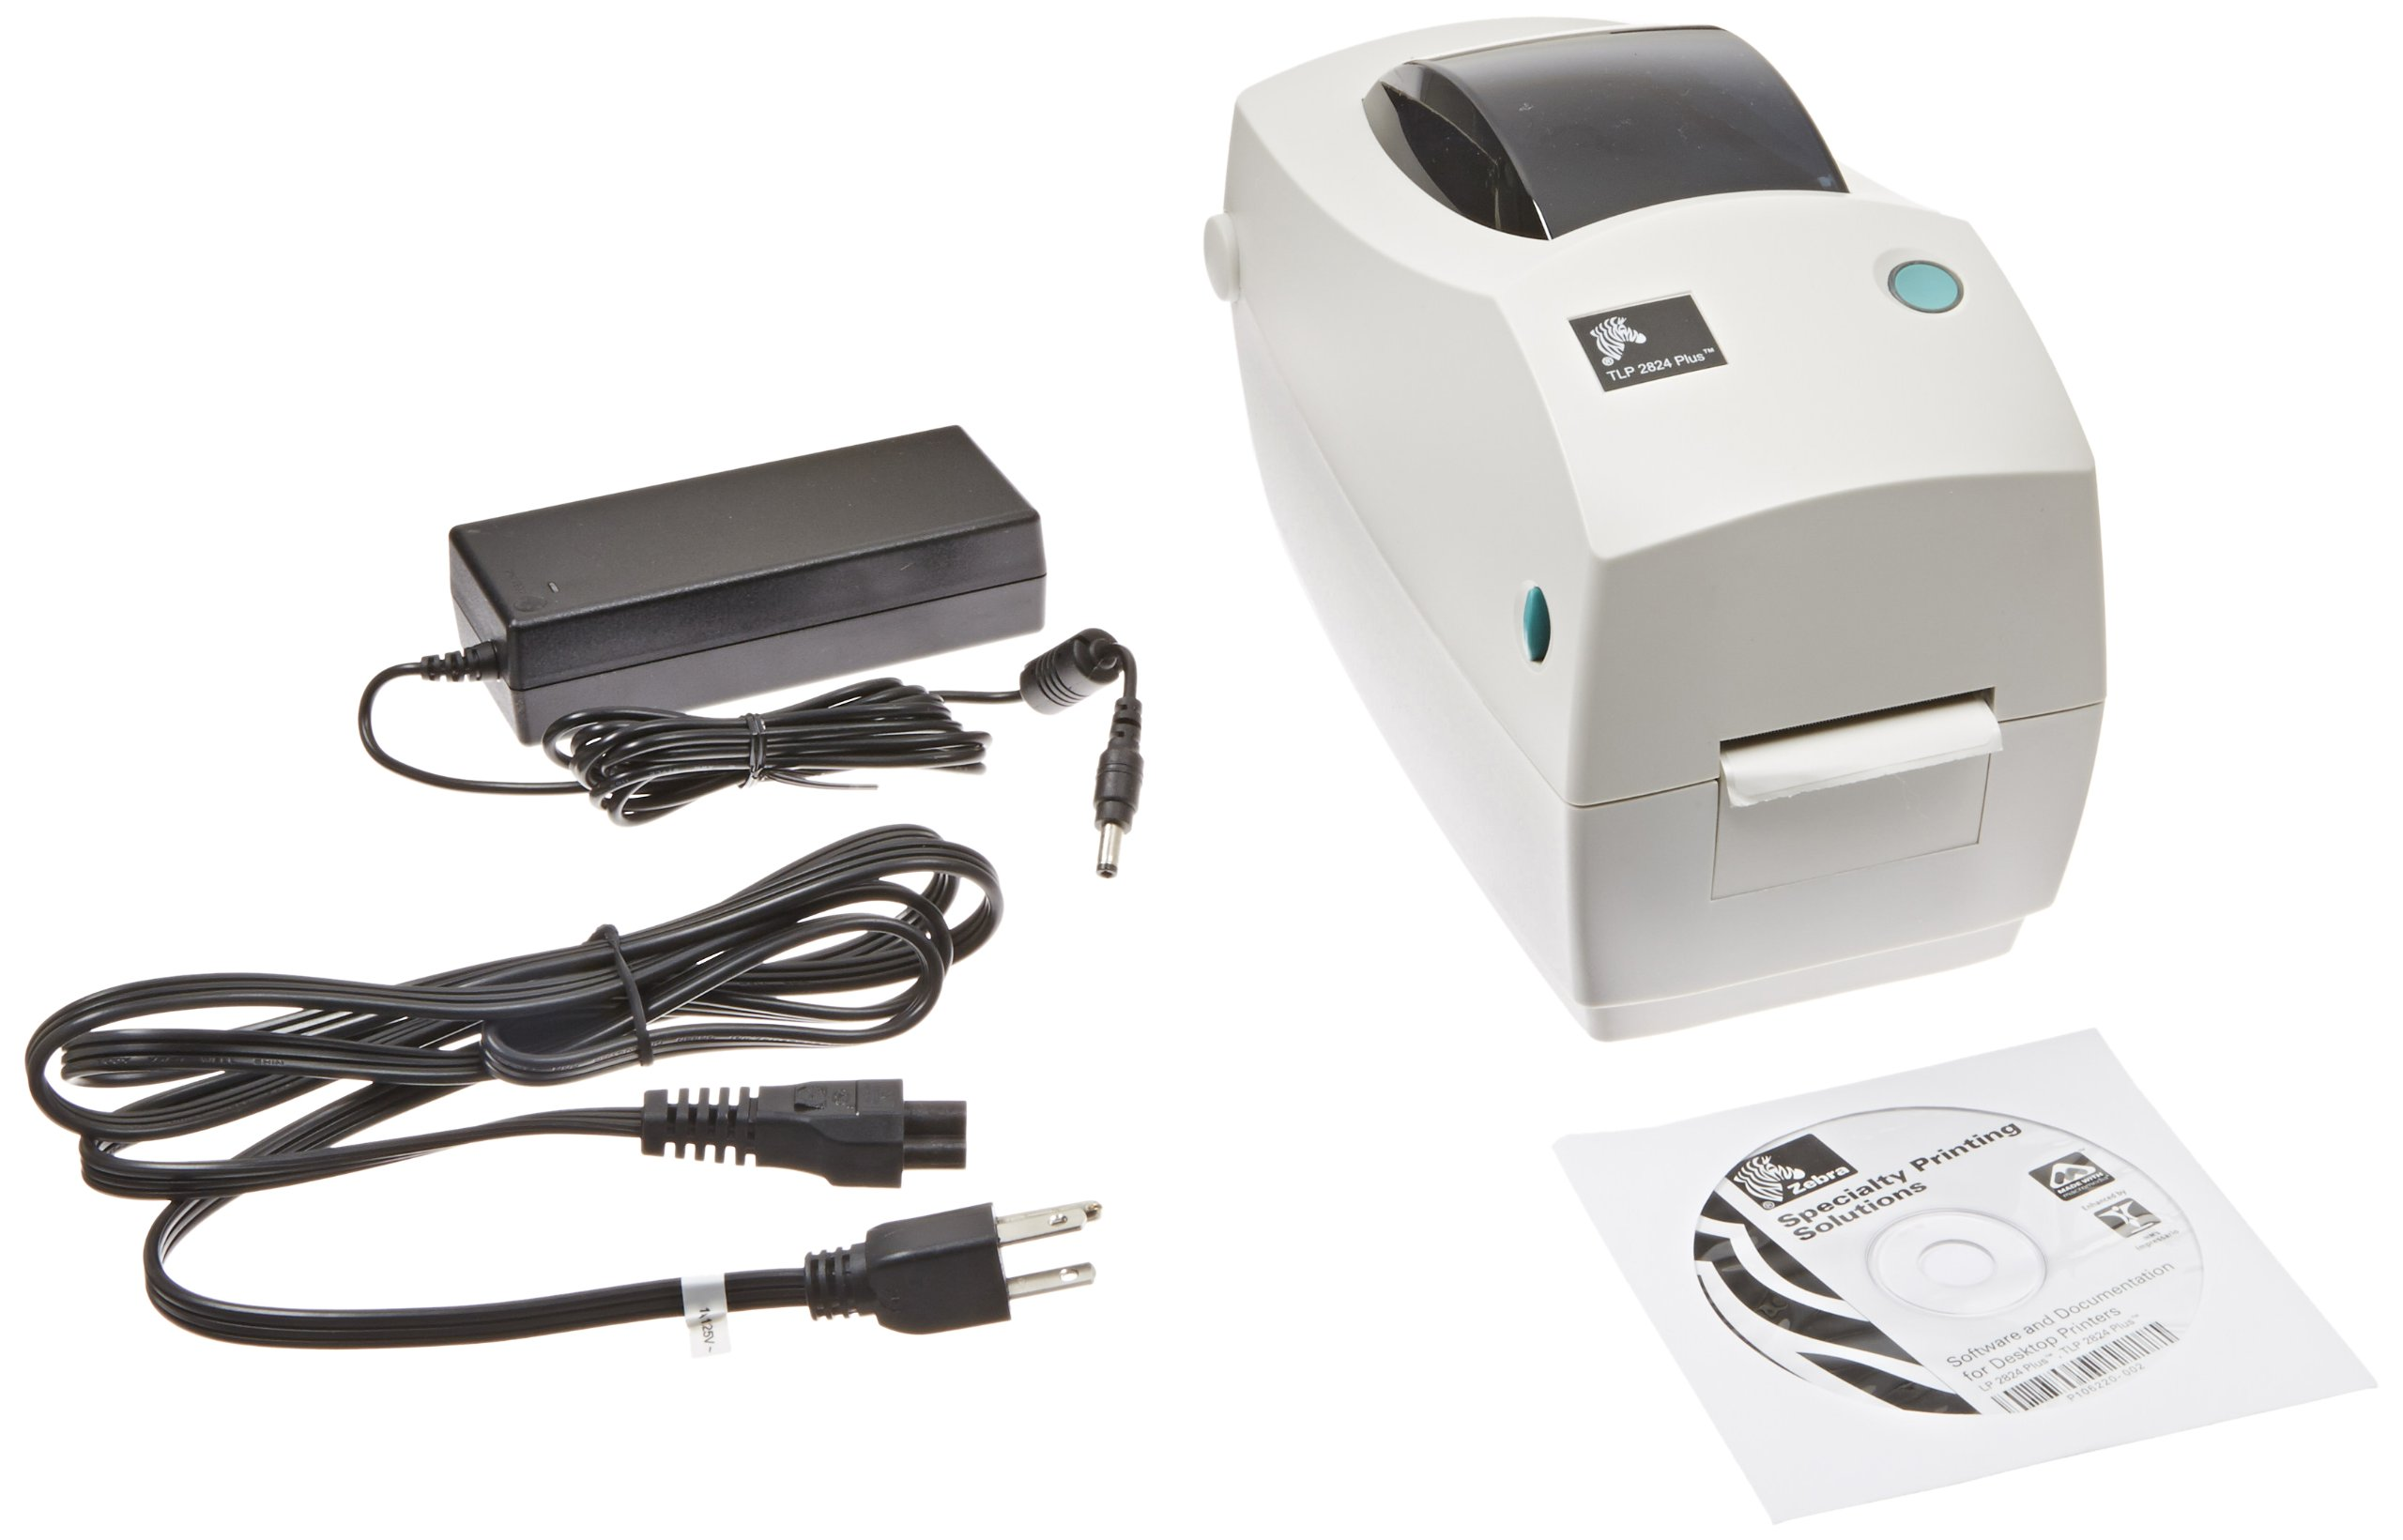 Zebra TLP 2824 Plus Monochrome Desktop Thermal Printer with Serial and USB Ports, 4 in/s Print Speed, 203 dpi Print Resolution, 2.20'' Print Width, 100-240V AC by Zebra